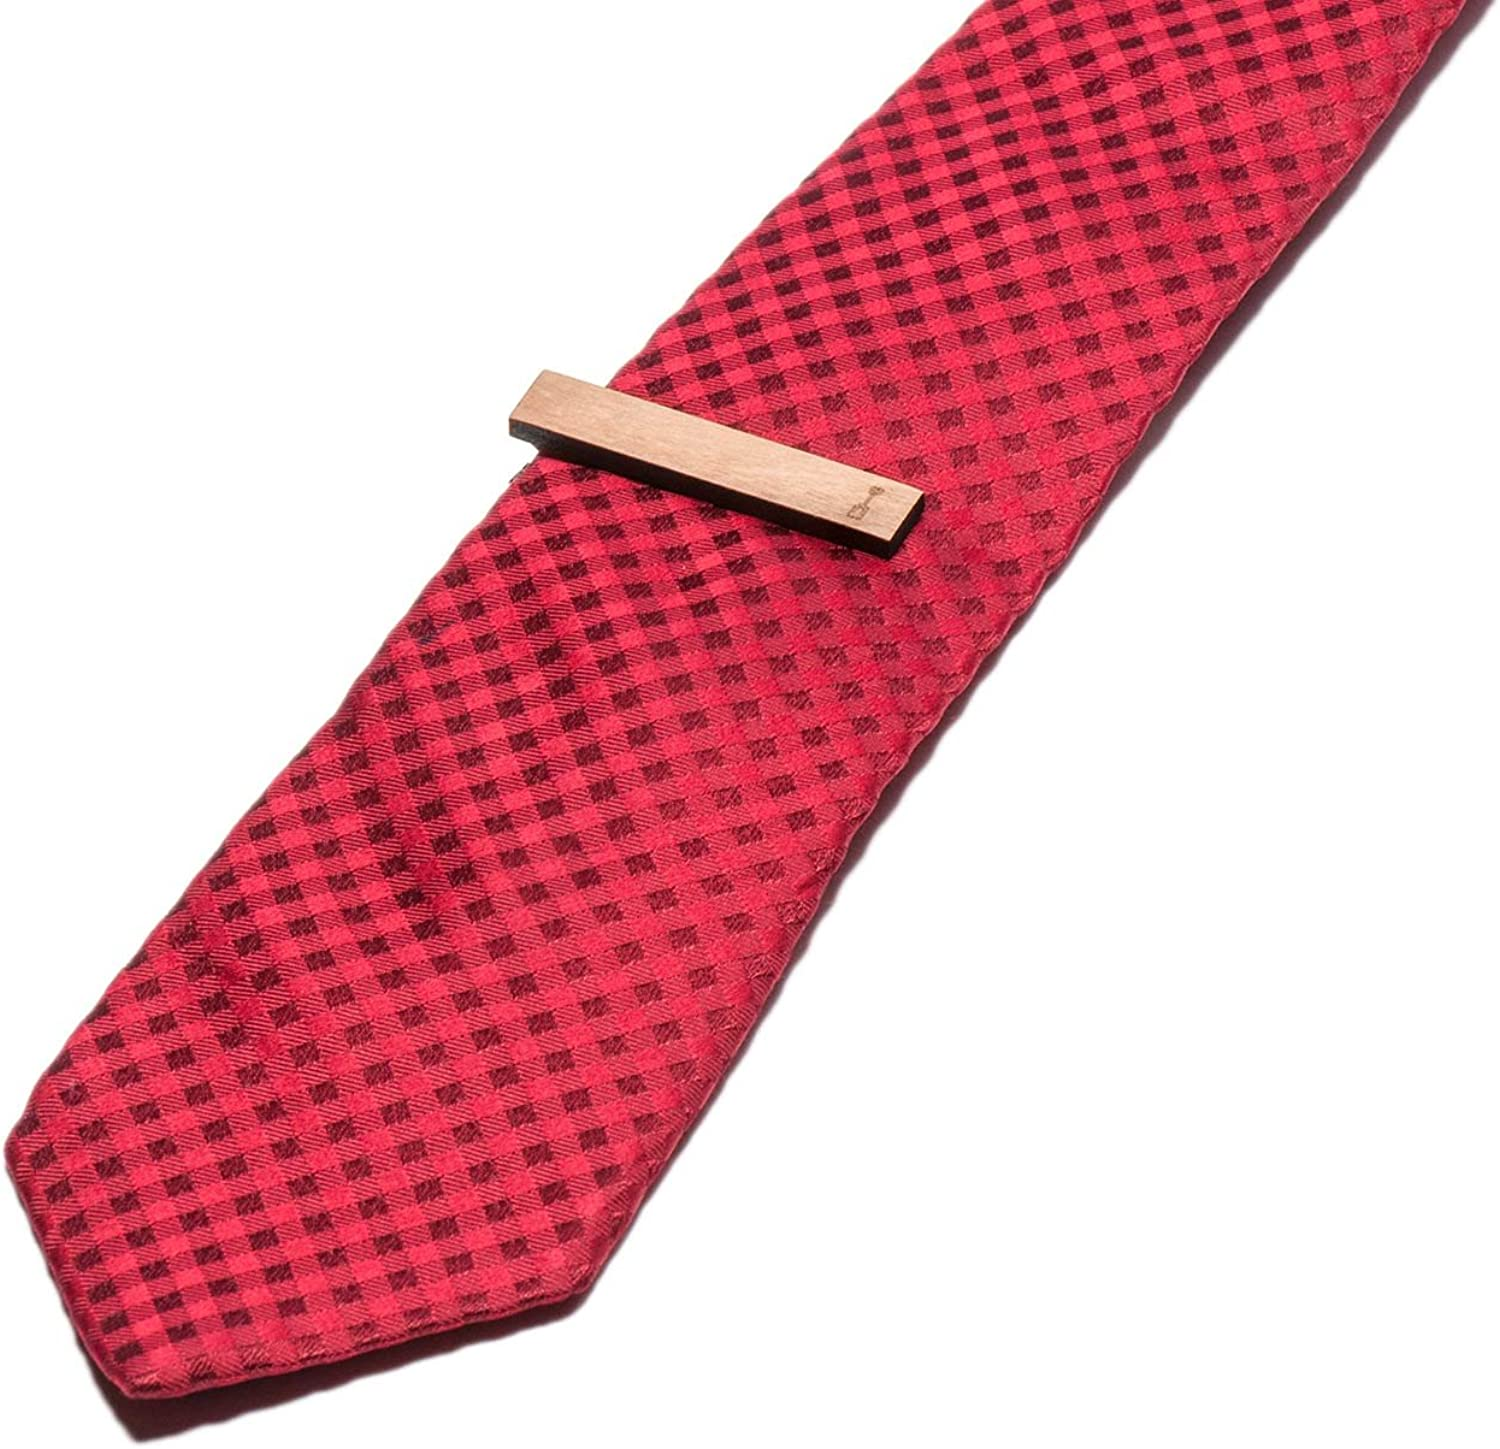 Wooden Accessories Company Wooden Tie Clips with Laser Engraved Sand Shovel Design Cherry Wood Tie Bar Engraved in The USA